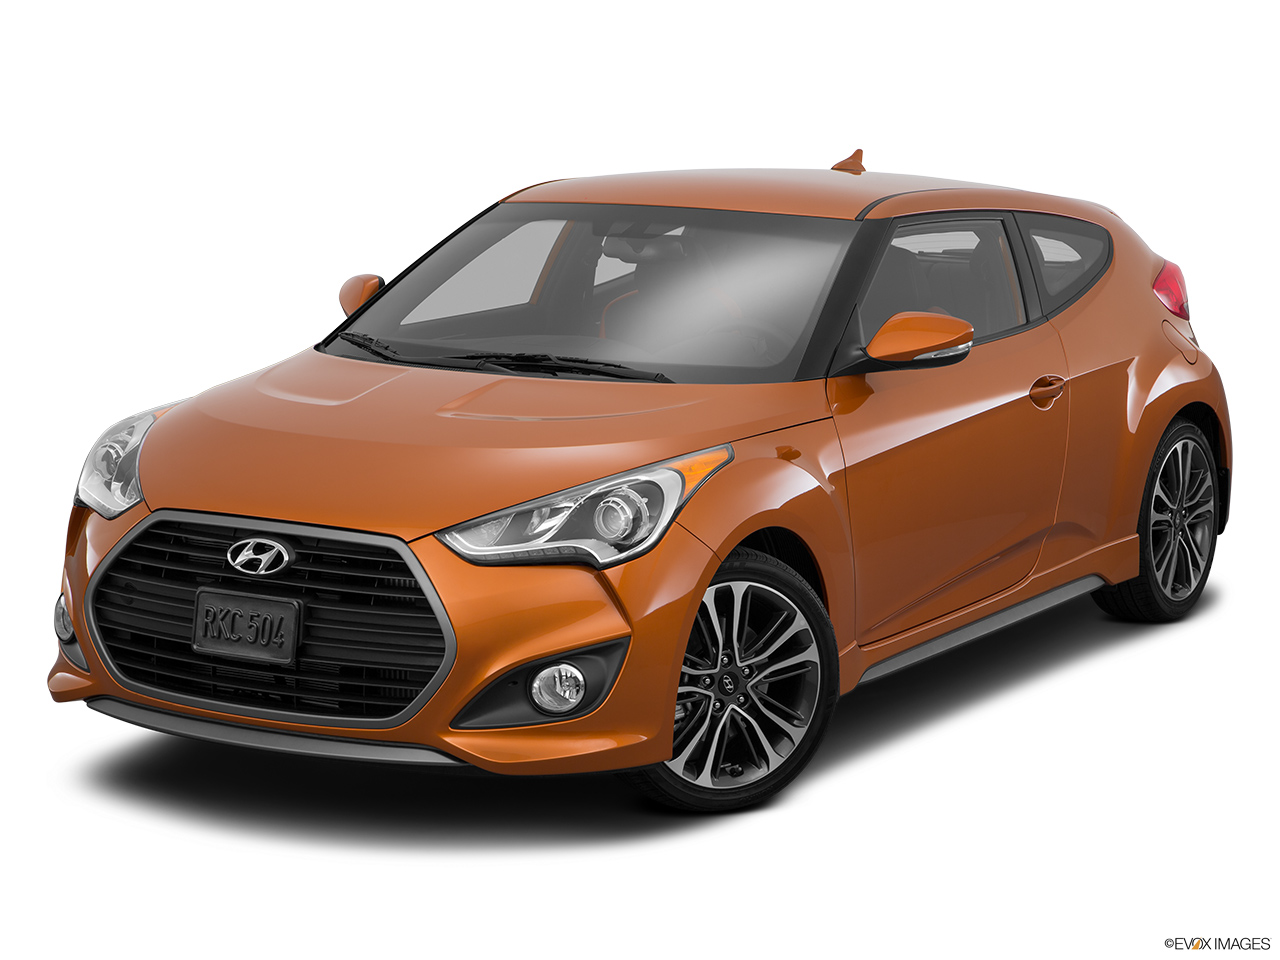 car features list for hyundai veloster 2016 1 6l turbo uae yallamotor. Black Bedroom Furniture Sets. Home Design Ideas